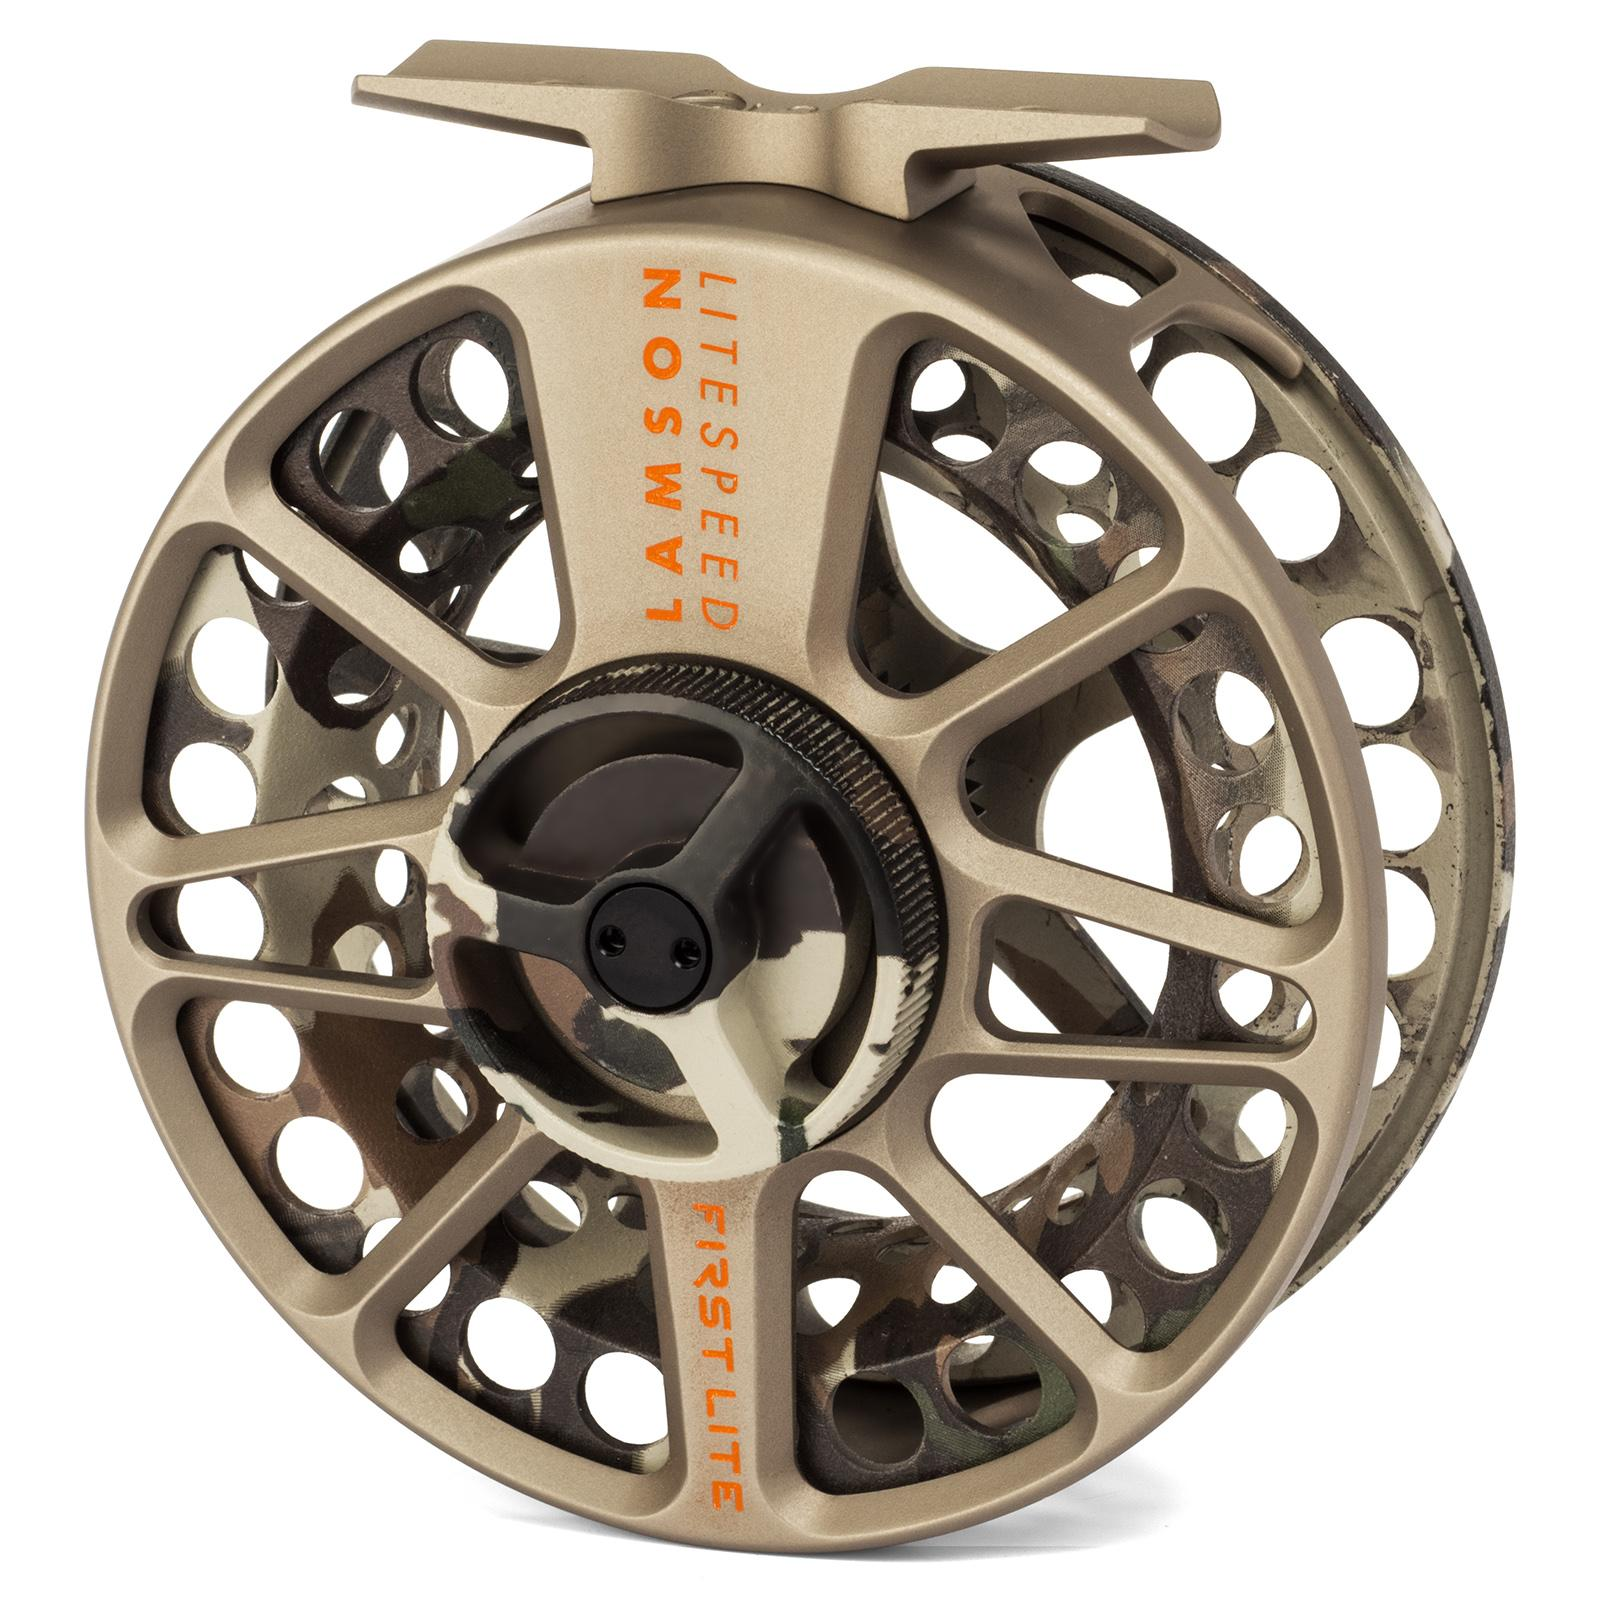 Waterworks Lamson Litespeed First Lite Fusion Fly Reel